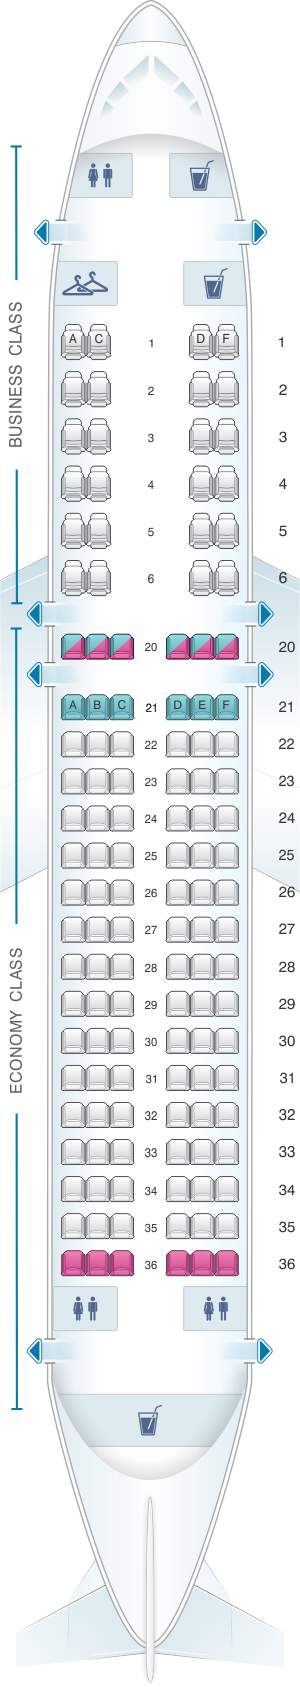 Seat map for MEA Airbus A320 200